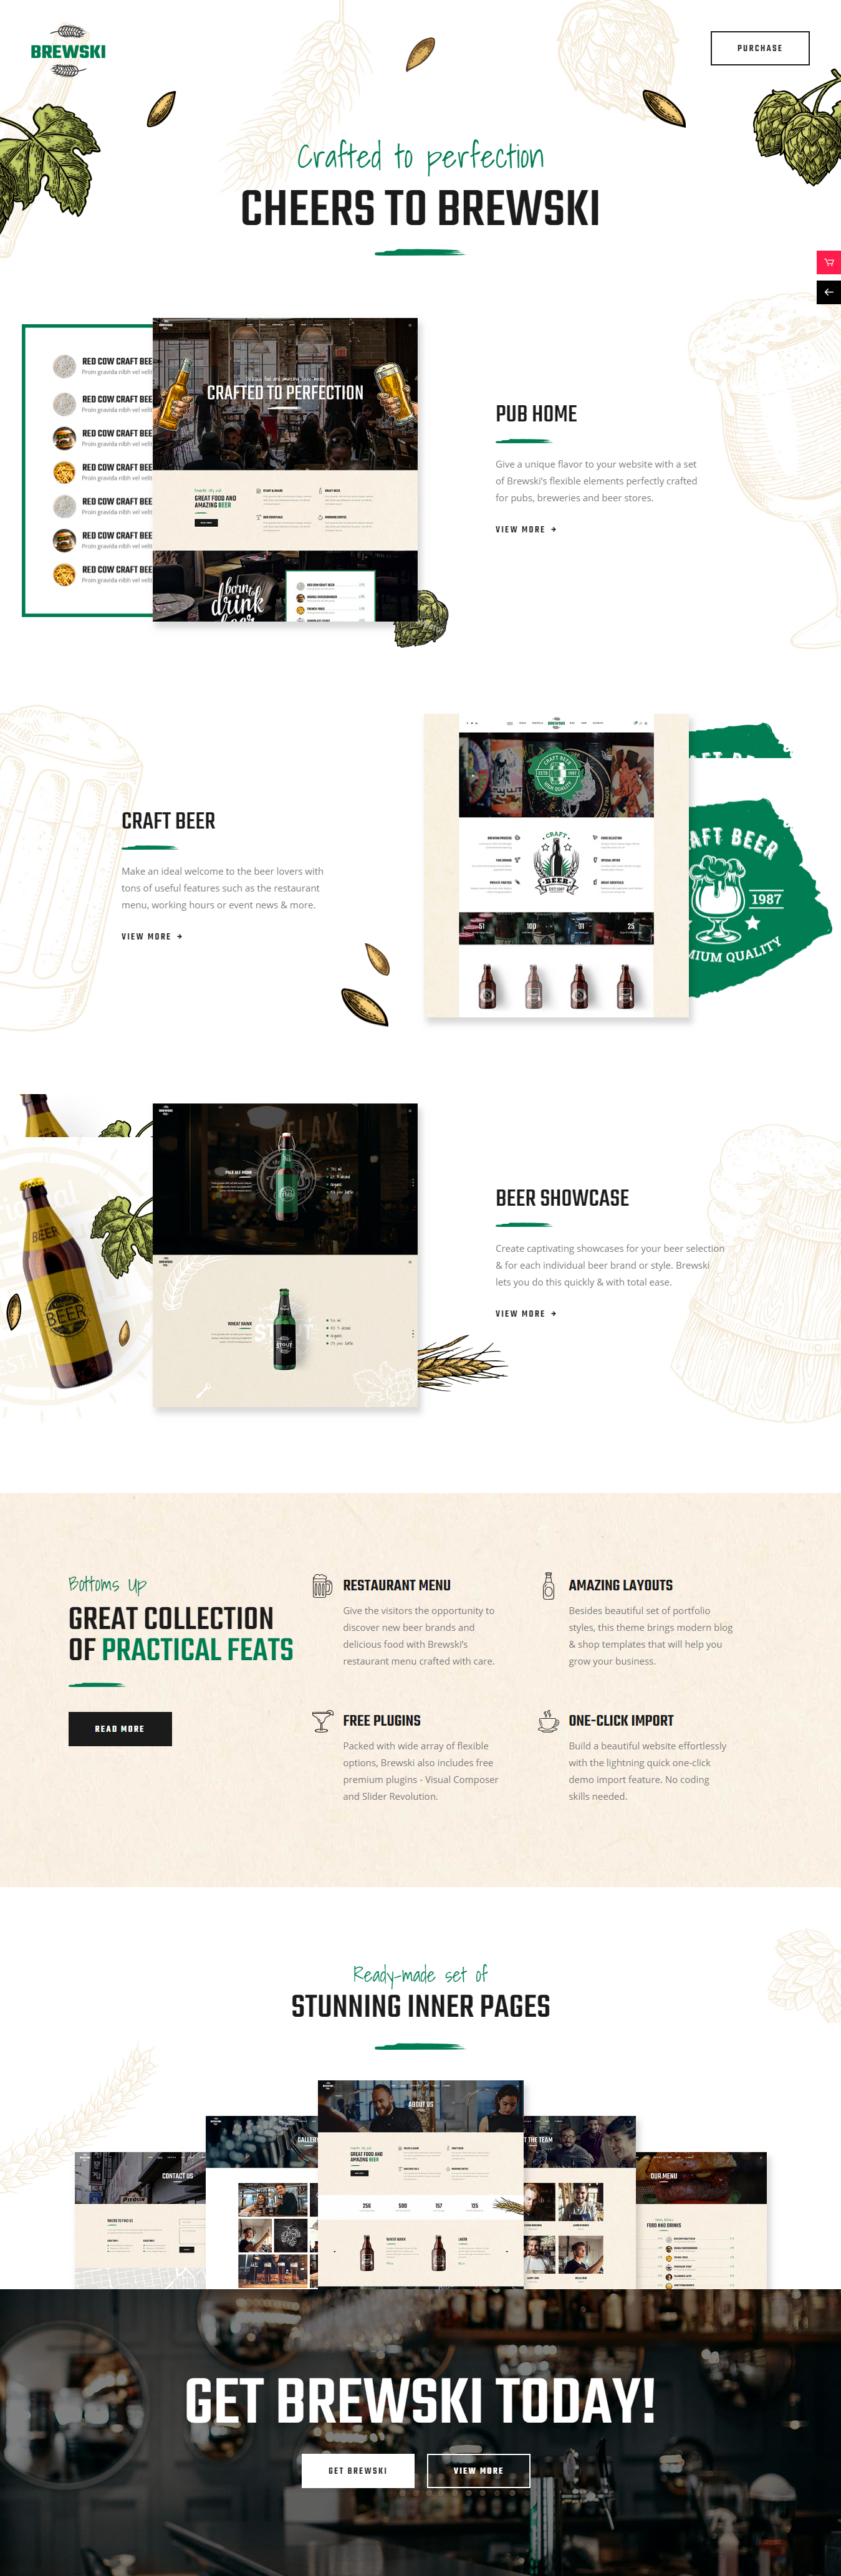 brewski best premium bar pub wordpress theme - 10+ Best Premium Bar and Pub WordPress Themes